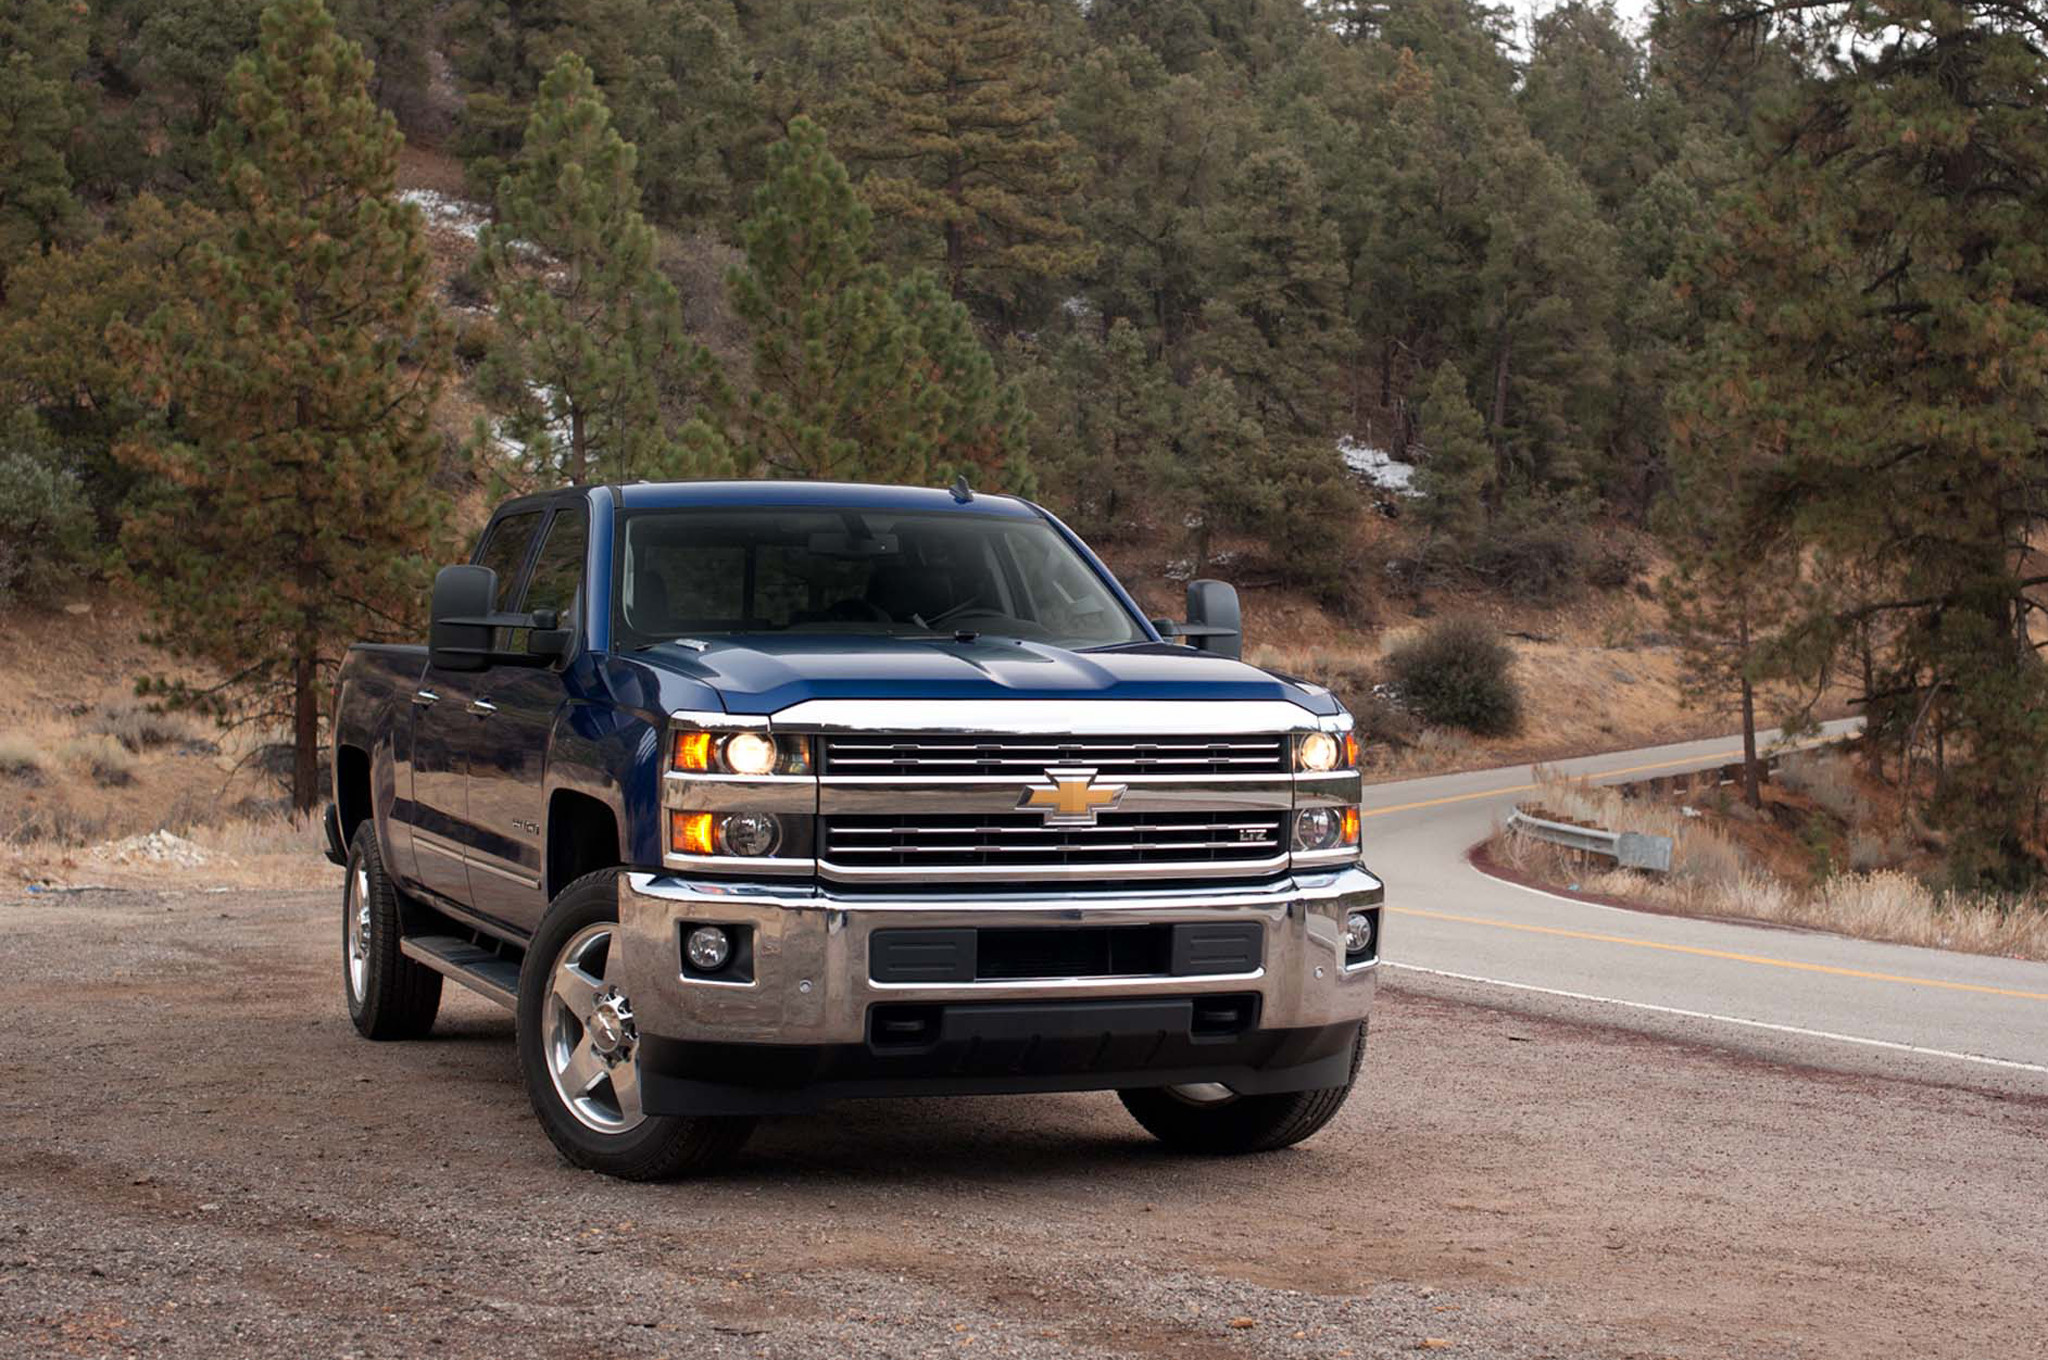 chevy silverado Showing 288 2000 chevrolet silverado 1500 listings for sale find deals as low as $4200 on carsforsalecom.